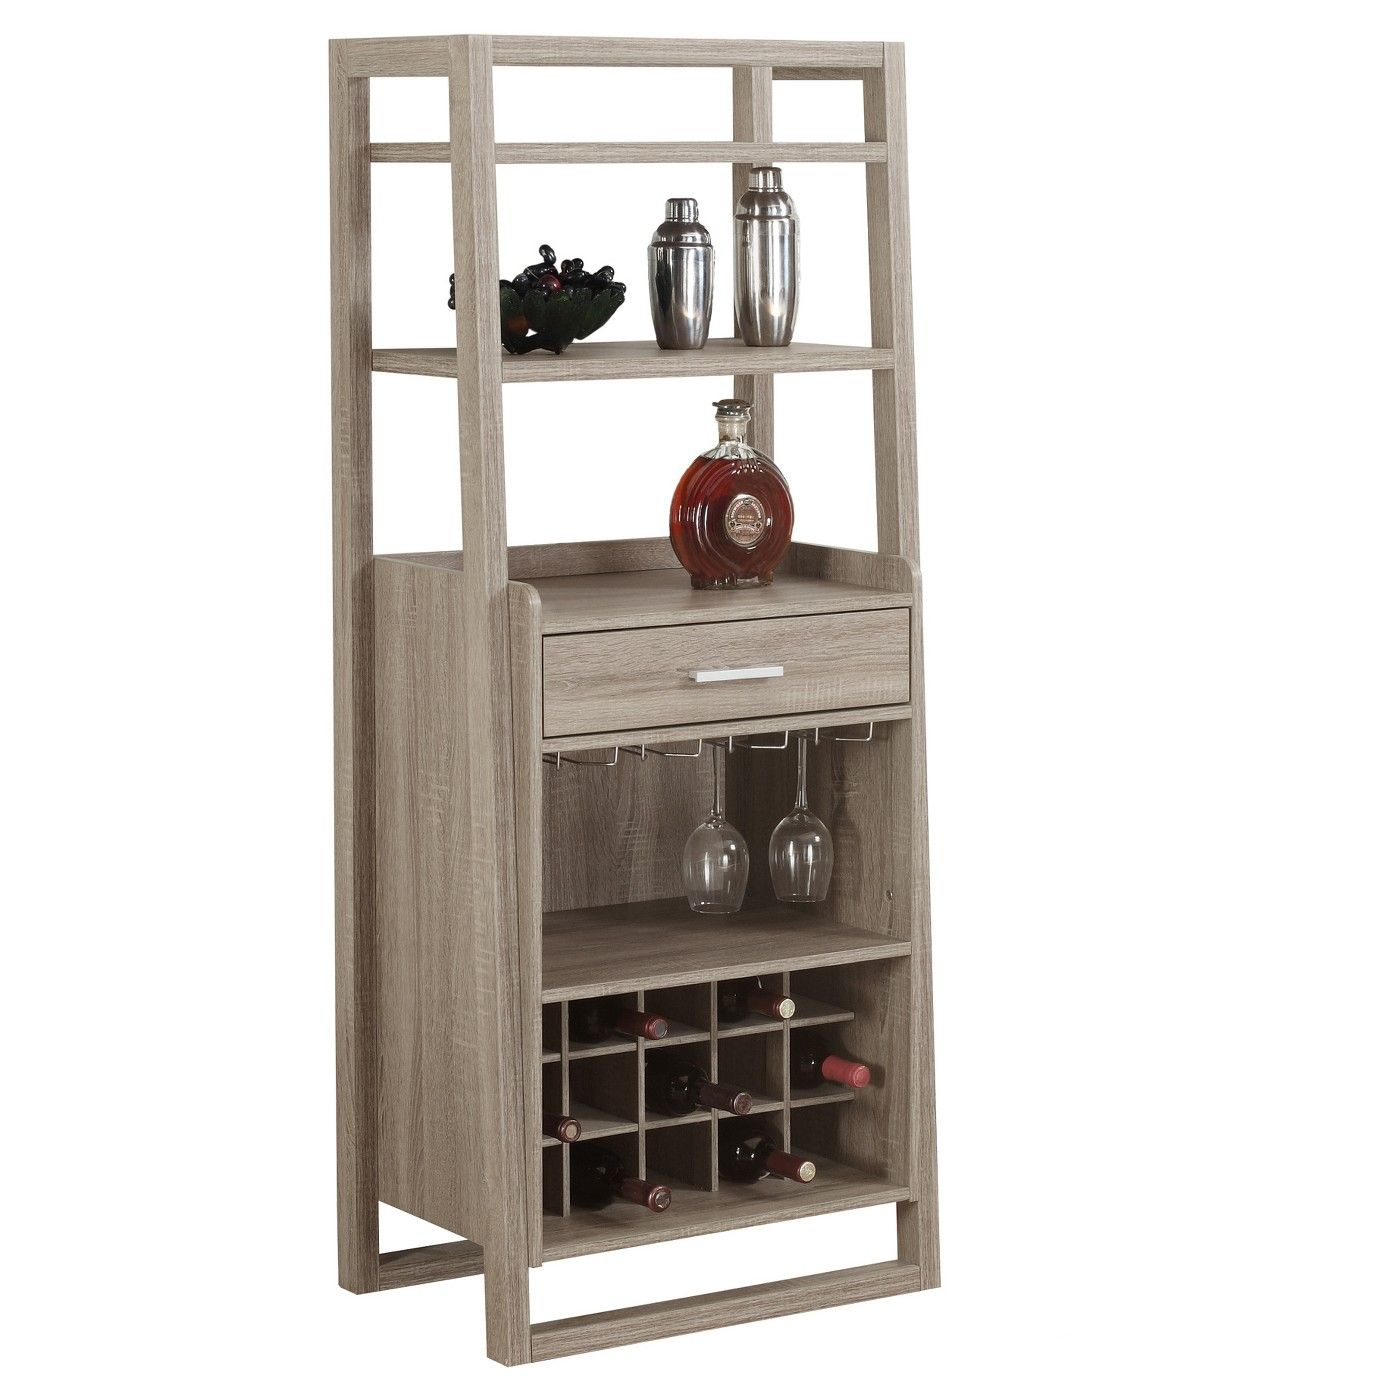 Home bar ladder style everyroom image of decor accents